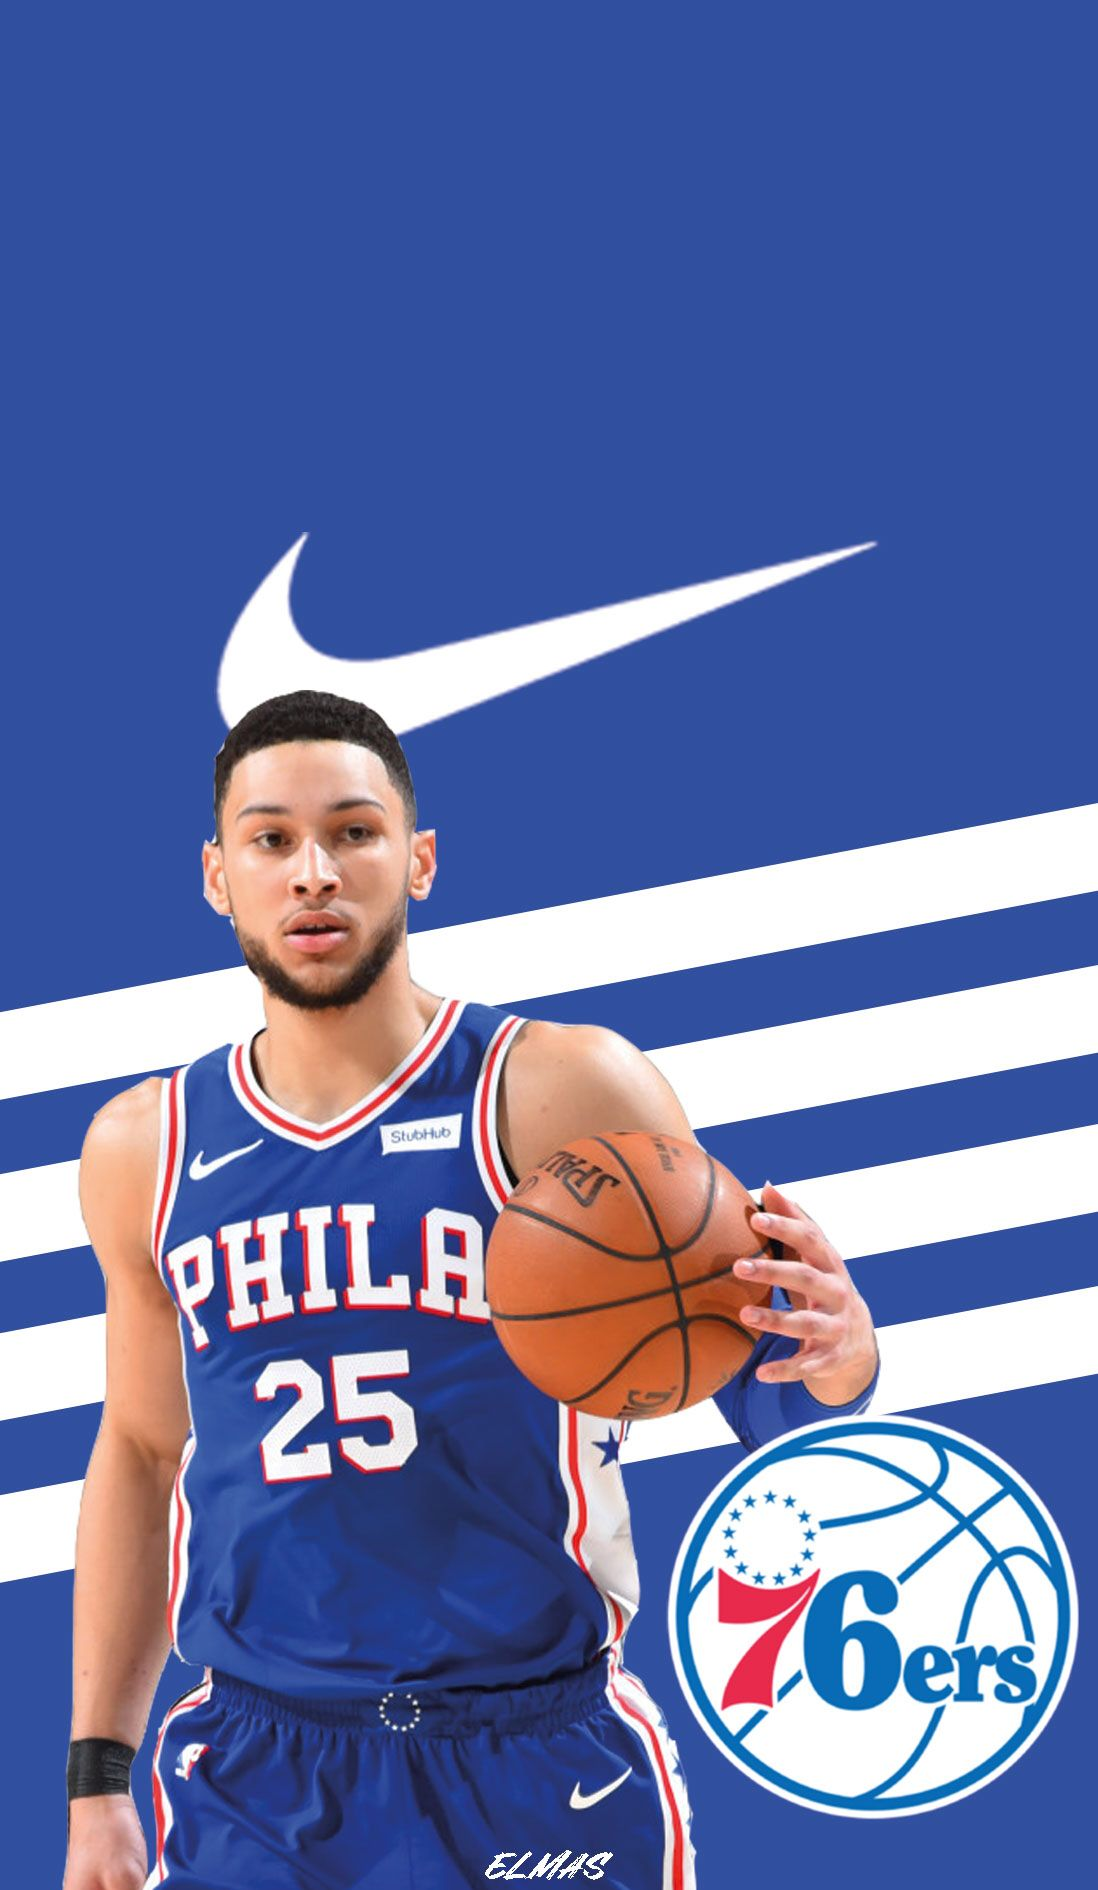 Pin By Aniyah Lee On Basquete 76ers Ben Simmons Nba Basketball